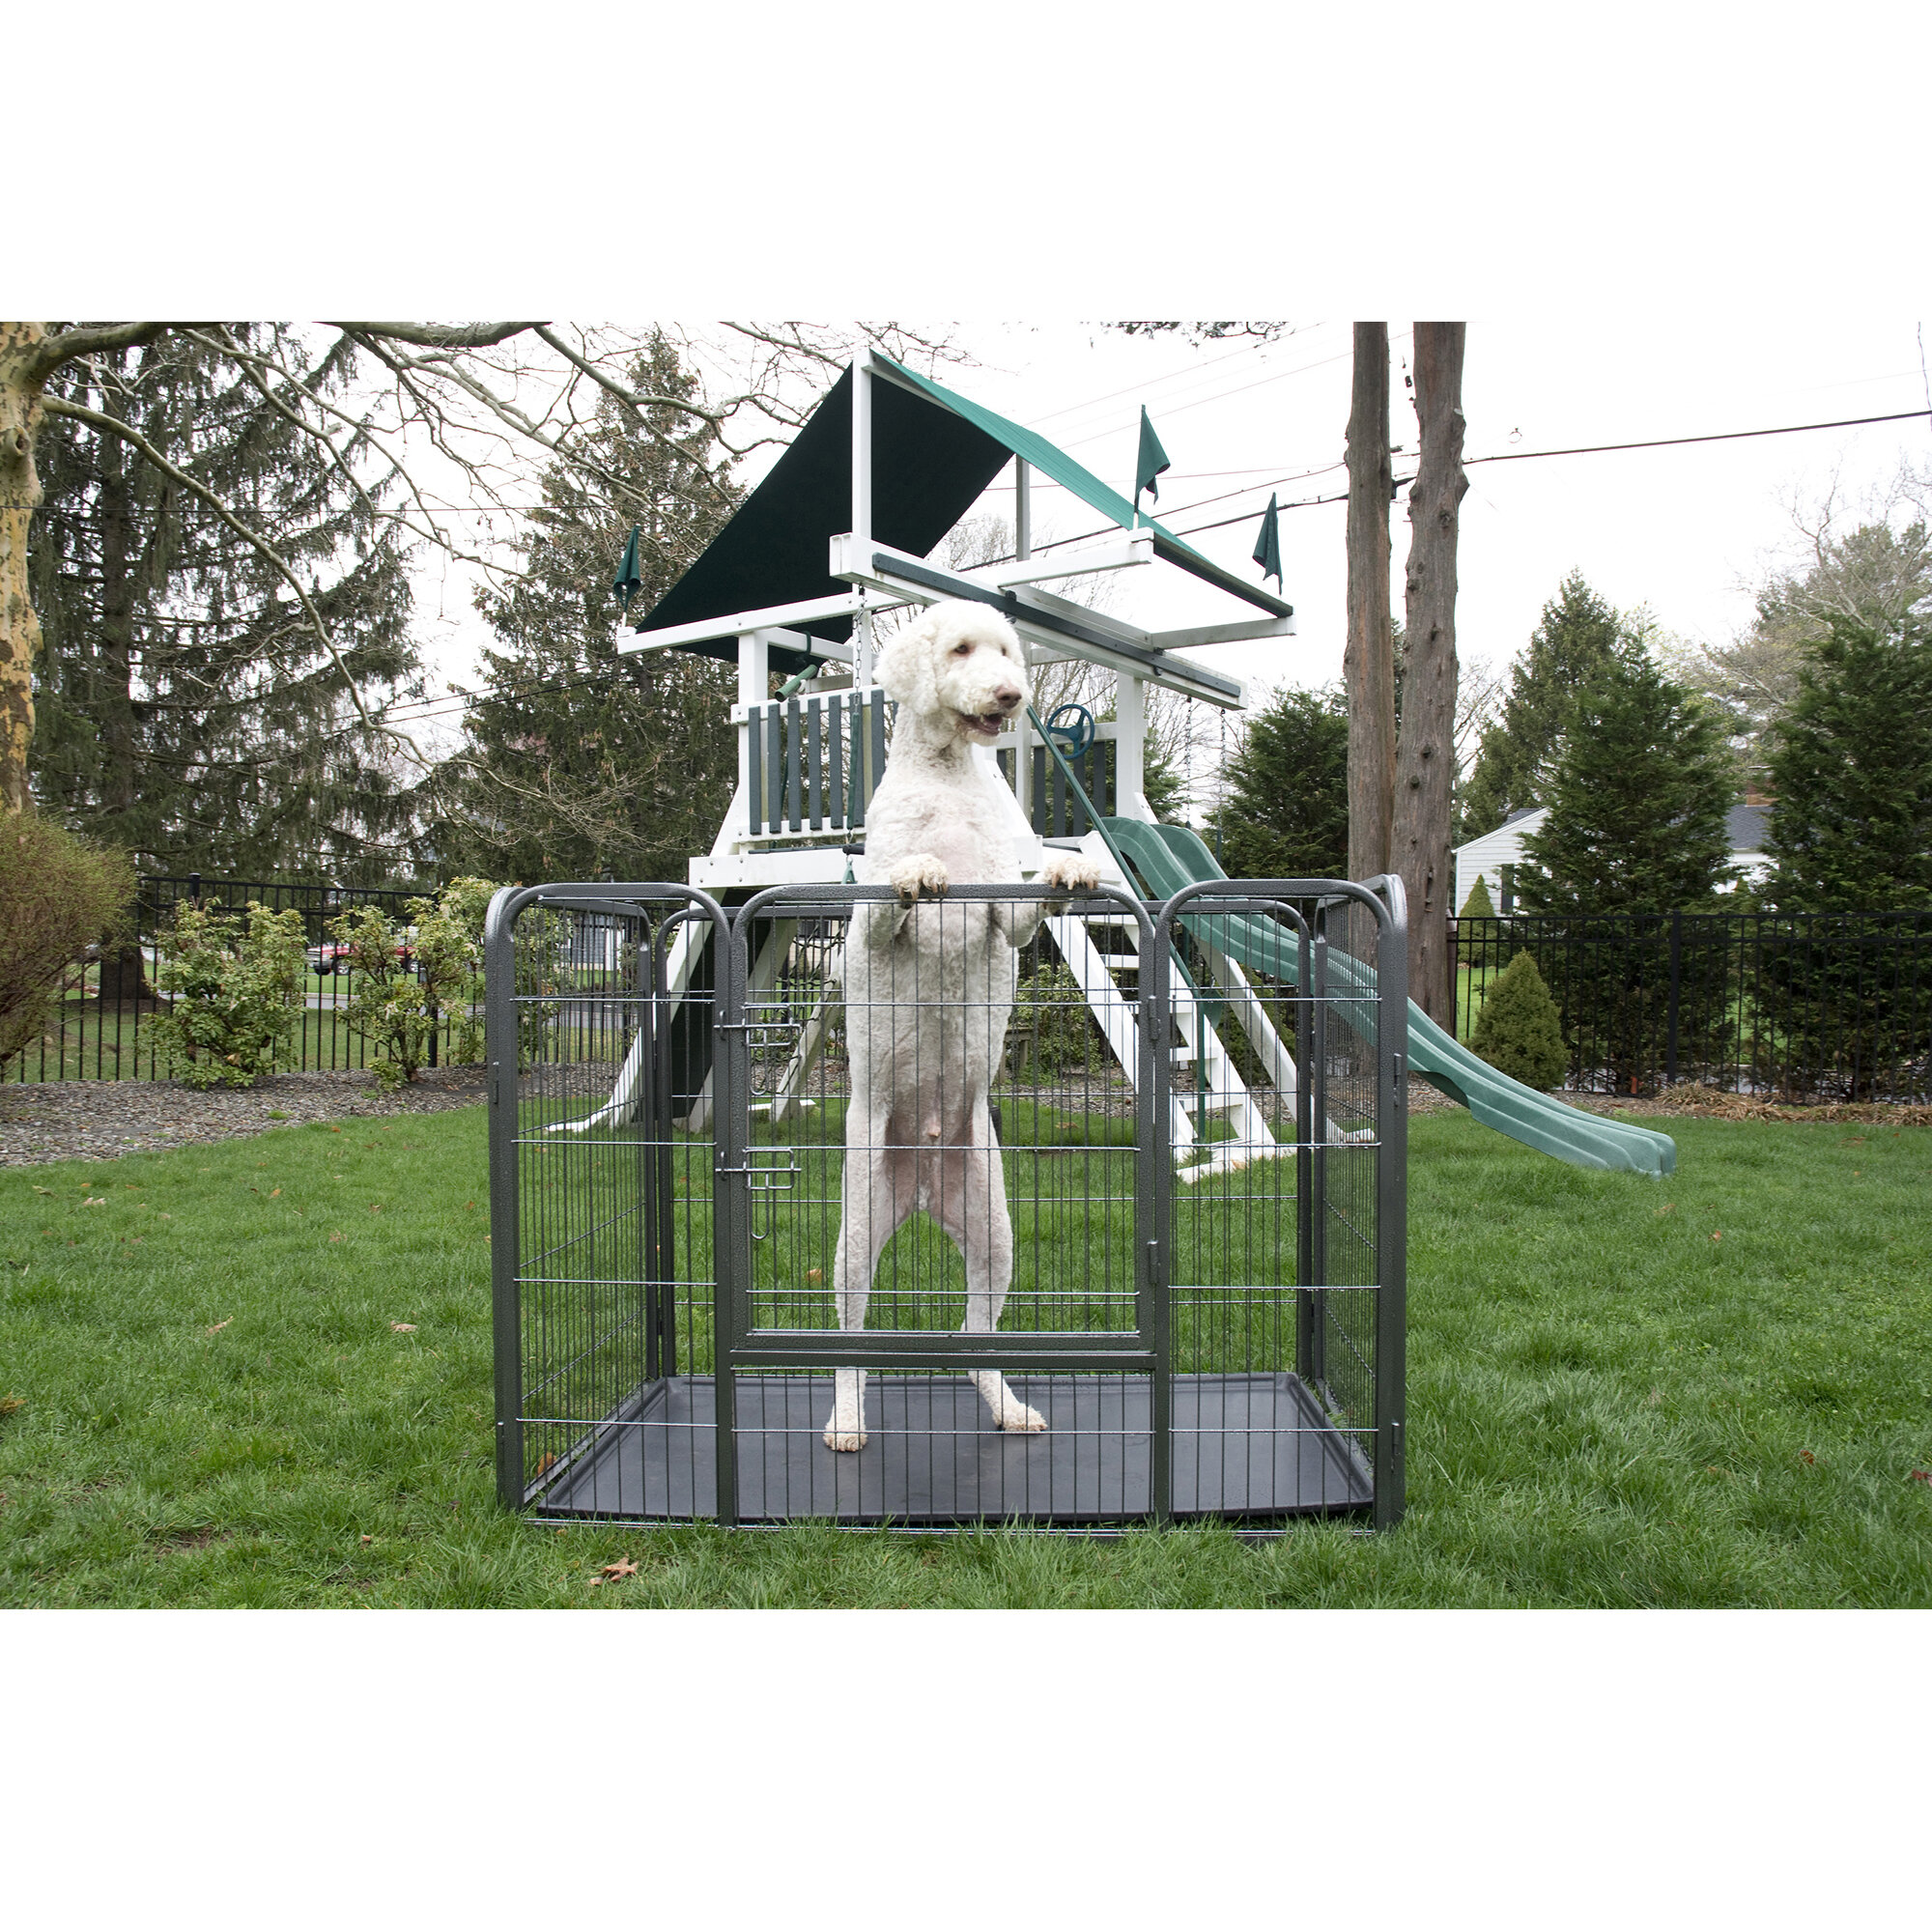 Safety & Security for your Pet